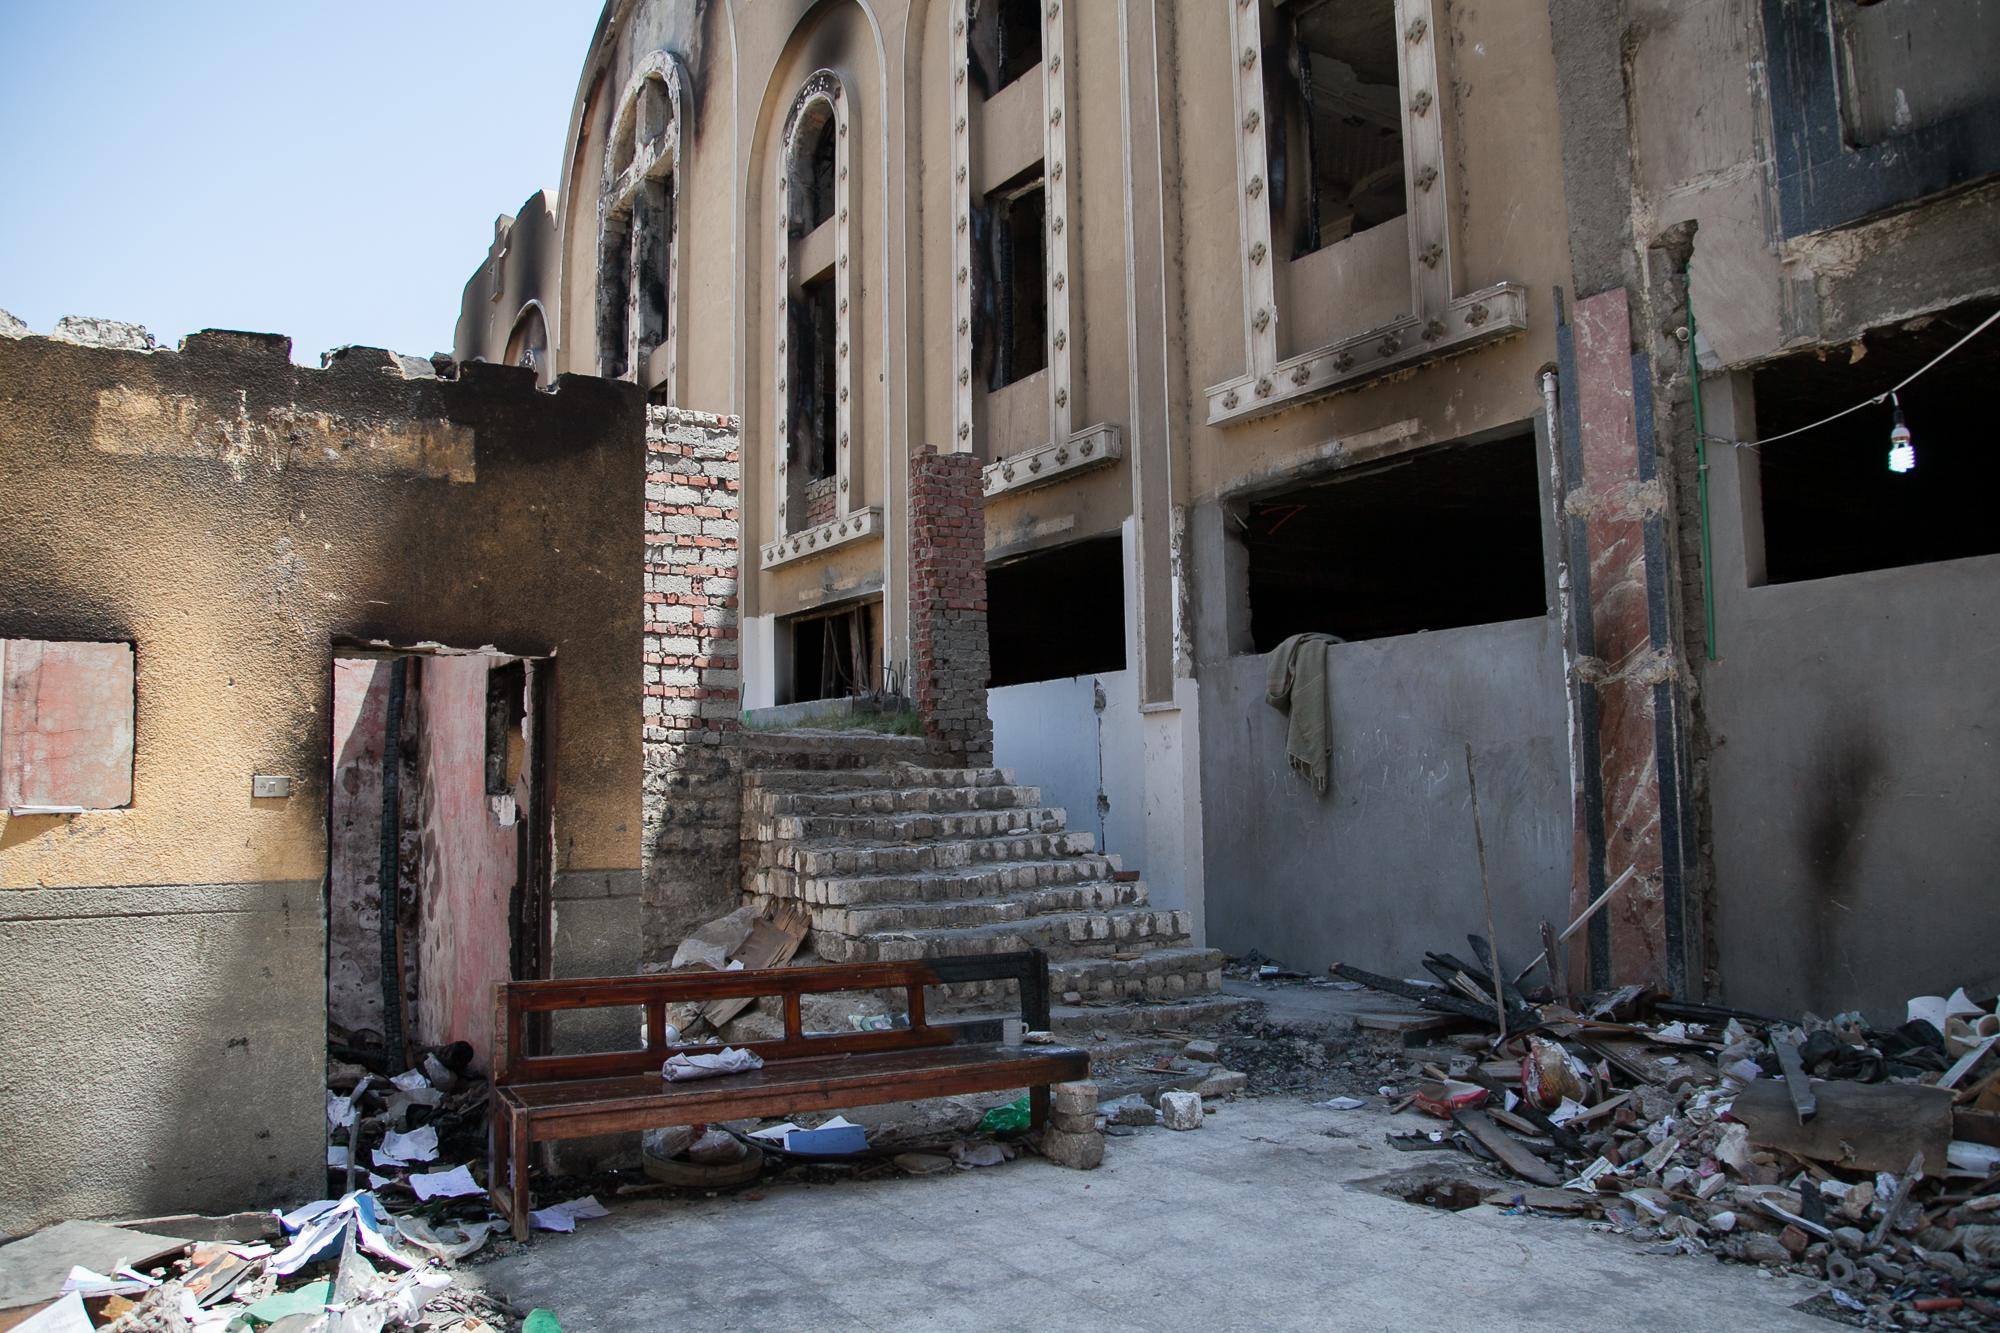 The outside of Al-Anba Mousa church in Minya. The church was attacked by groups of men on August 14, 2013, who were pro-Mohamed Morsi supporters. While Raba'a al Adawiya and Nahda (pro-Morsi sit-ins) were being cleared by security forces (where hundreds of people were killed) some pro-Morsi supporters attacked Coptic Christian churches, businesses and homes. Tension still remains quite high.